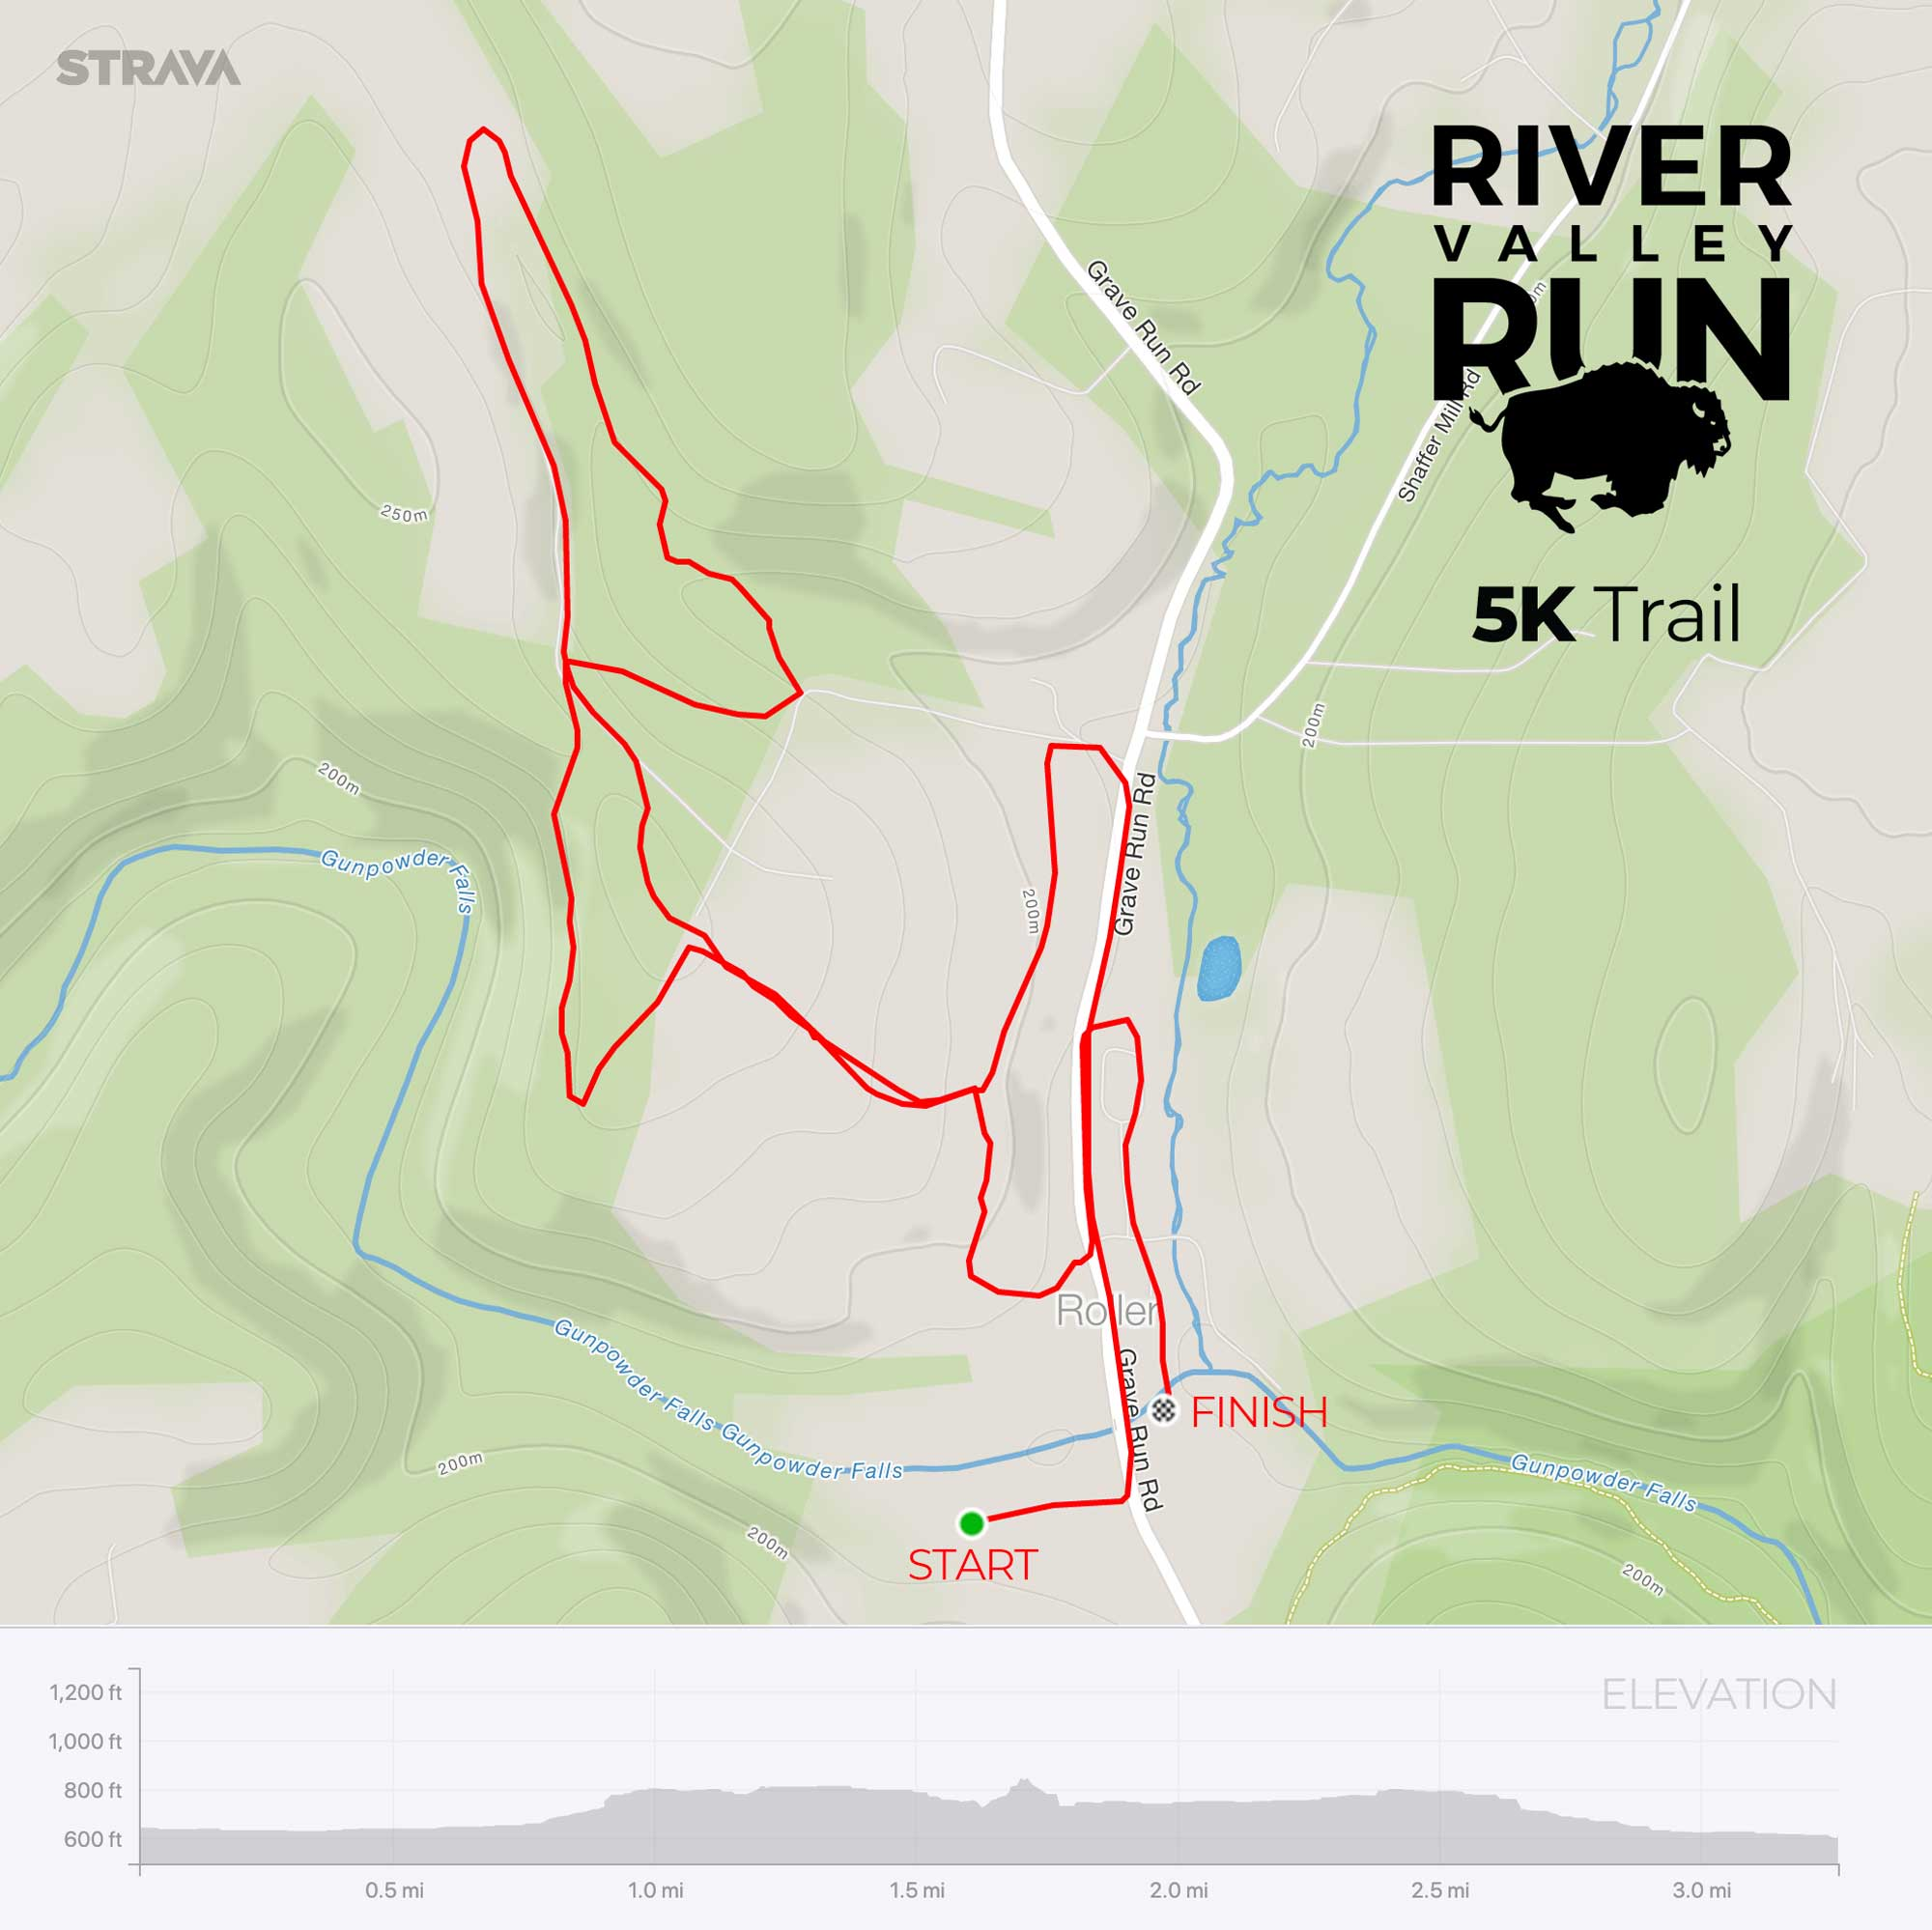 5K Trail Course Map